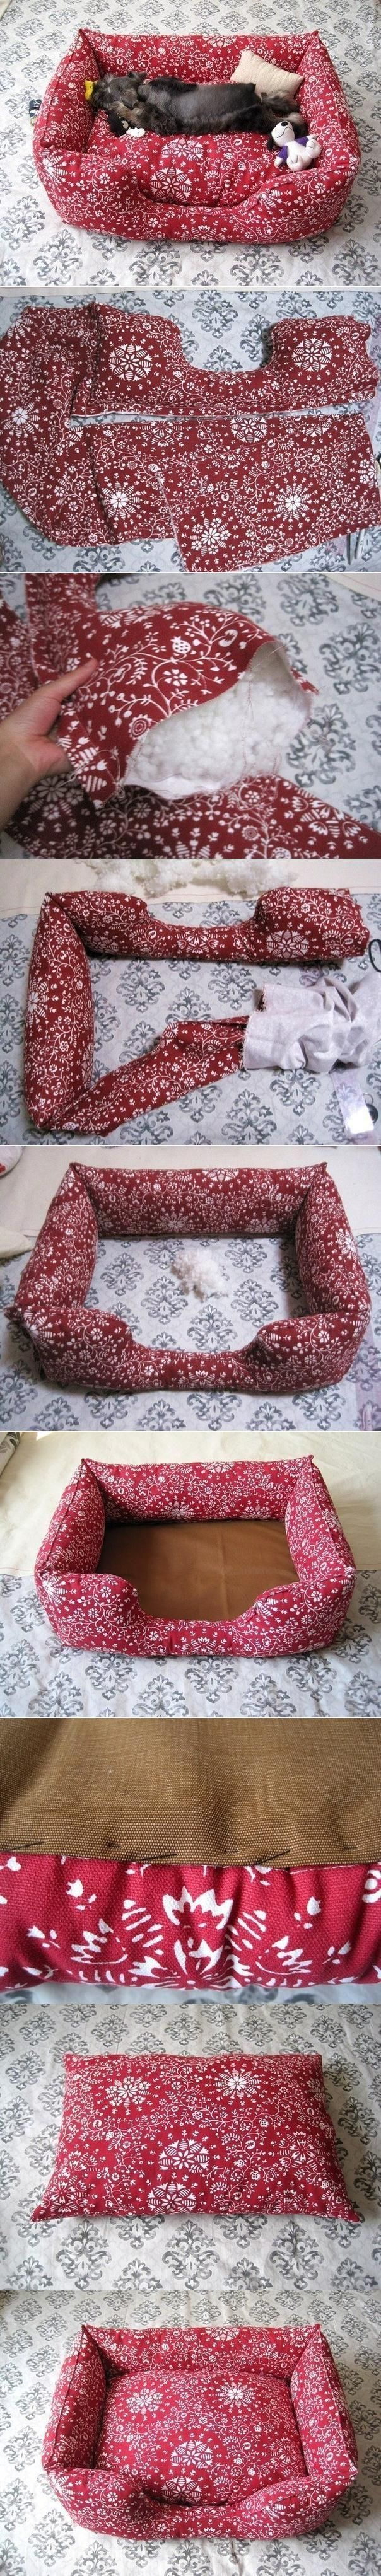 DIY Fabric Pet Sofa DIY Fabric Pet Sofa- I wish I could make the puppies something like this but they would eat it in days.